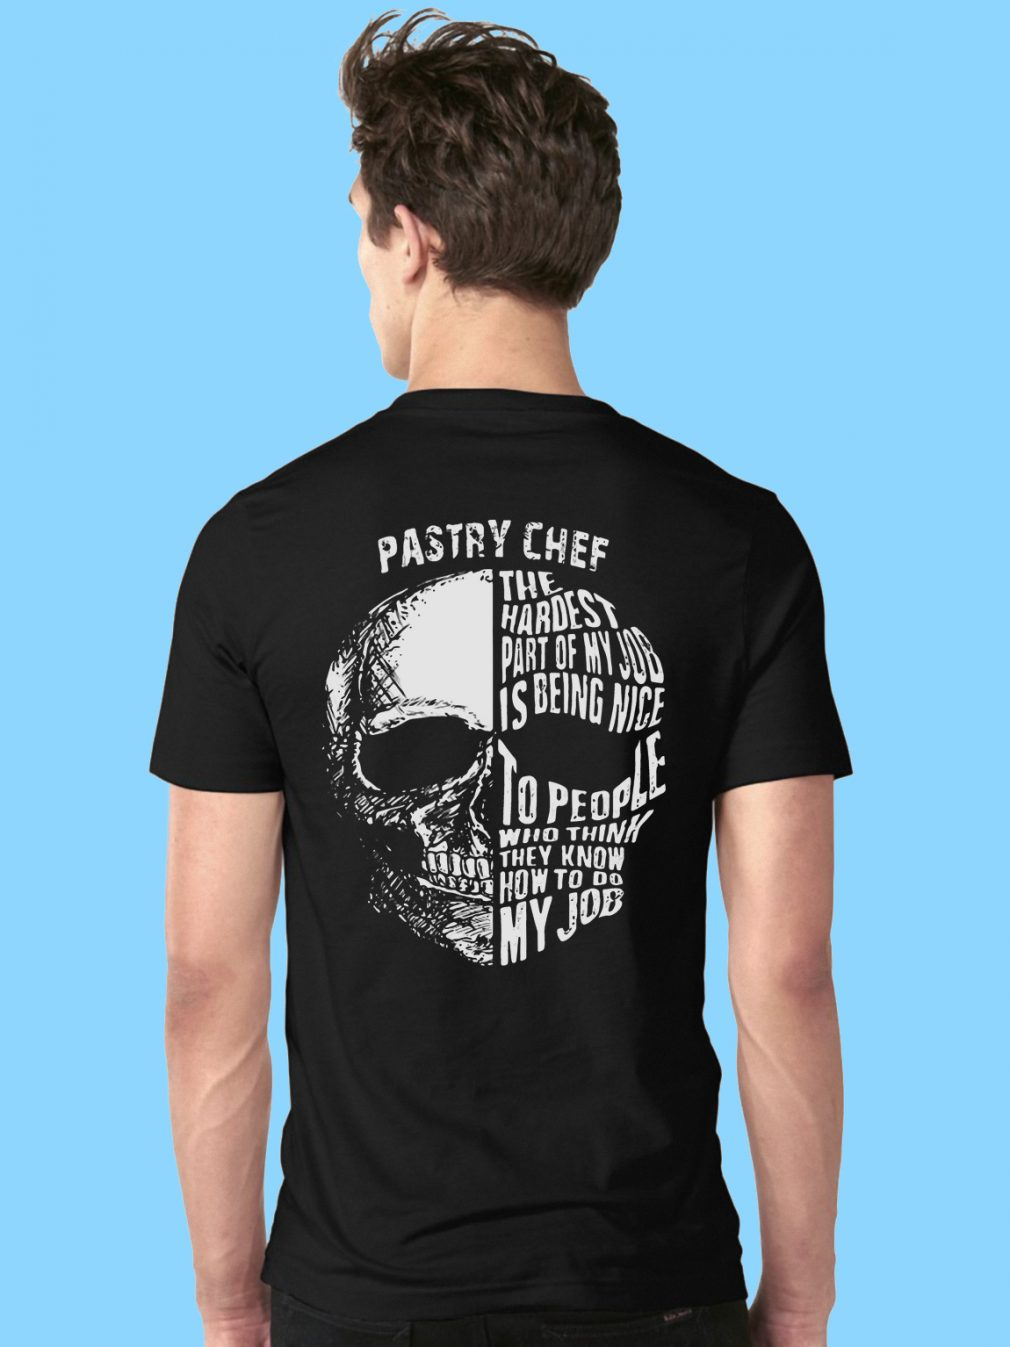 Pastry Chef Hardest Part Job Nice Shirt